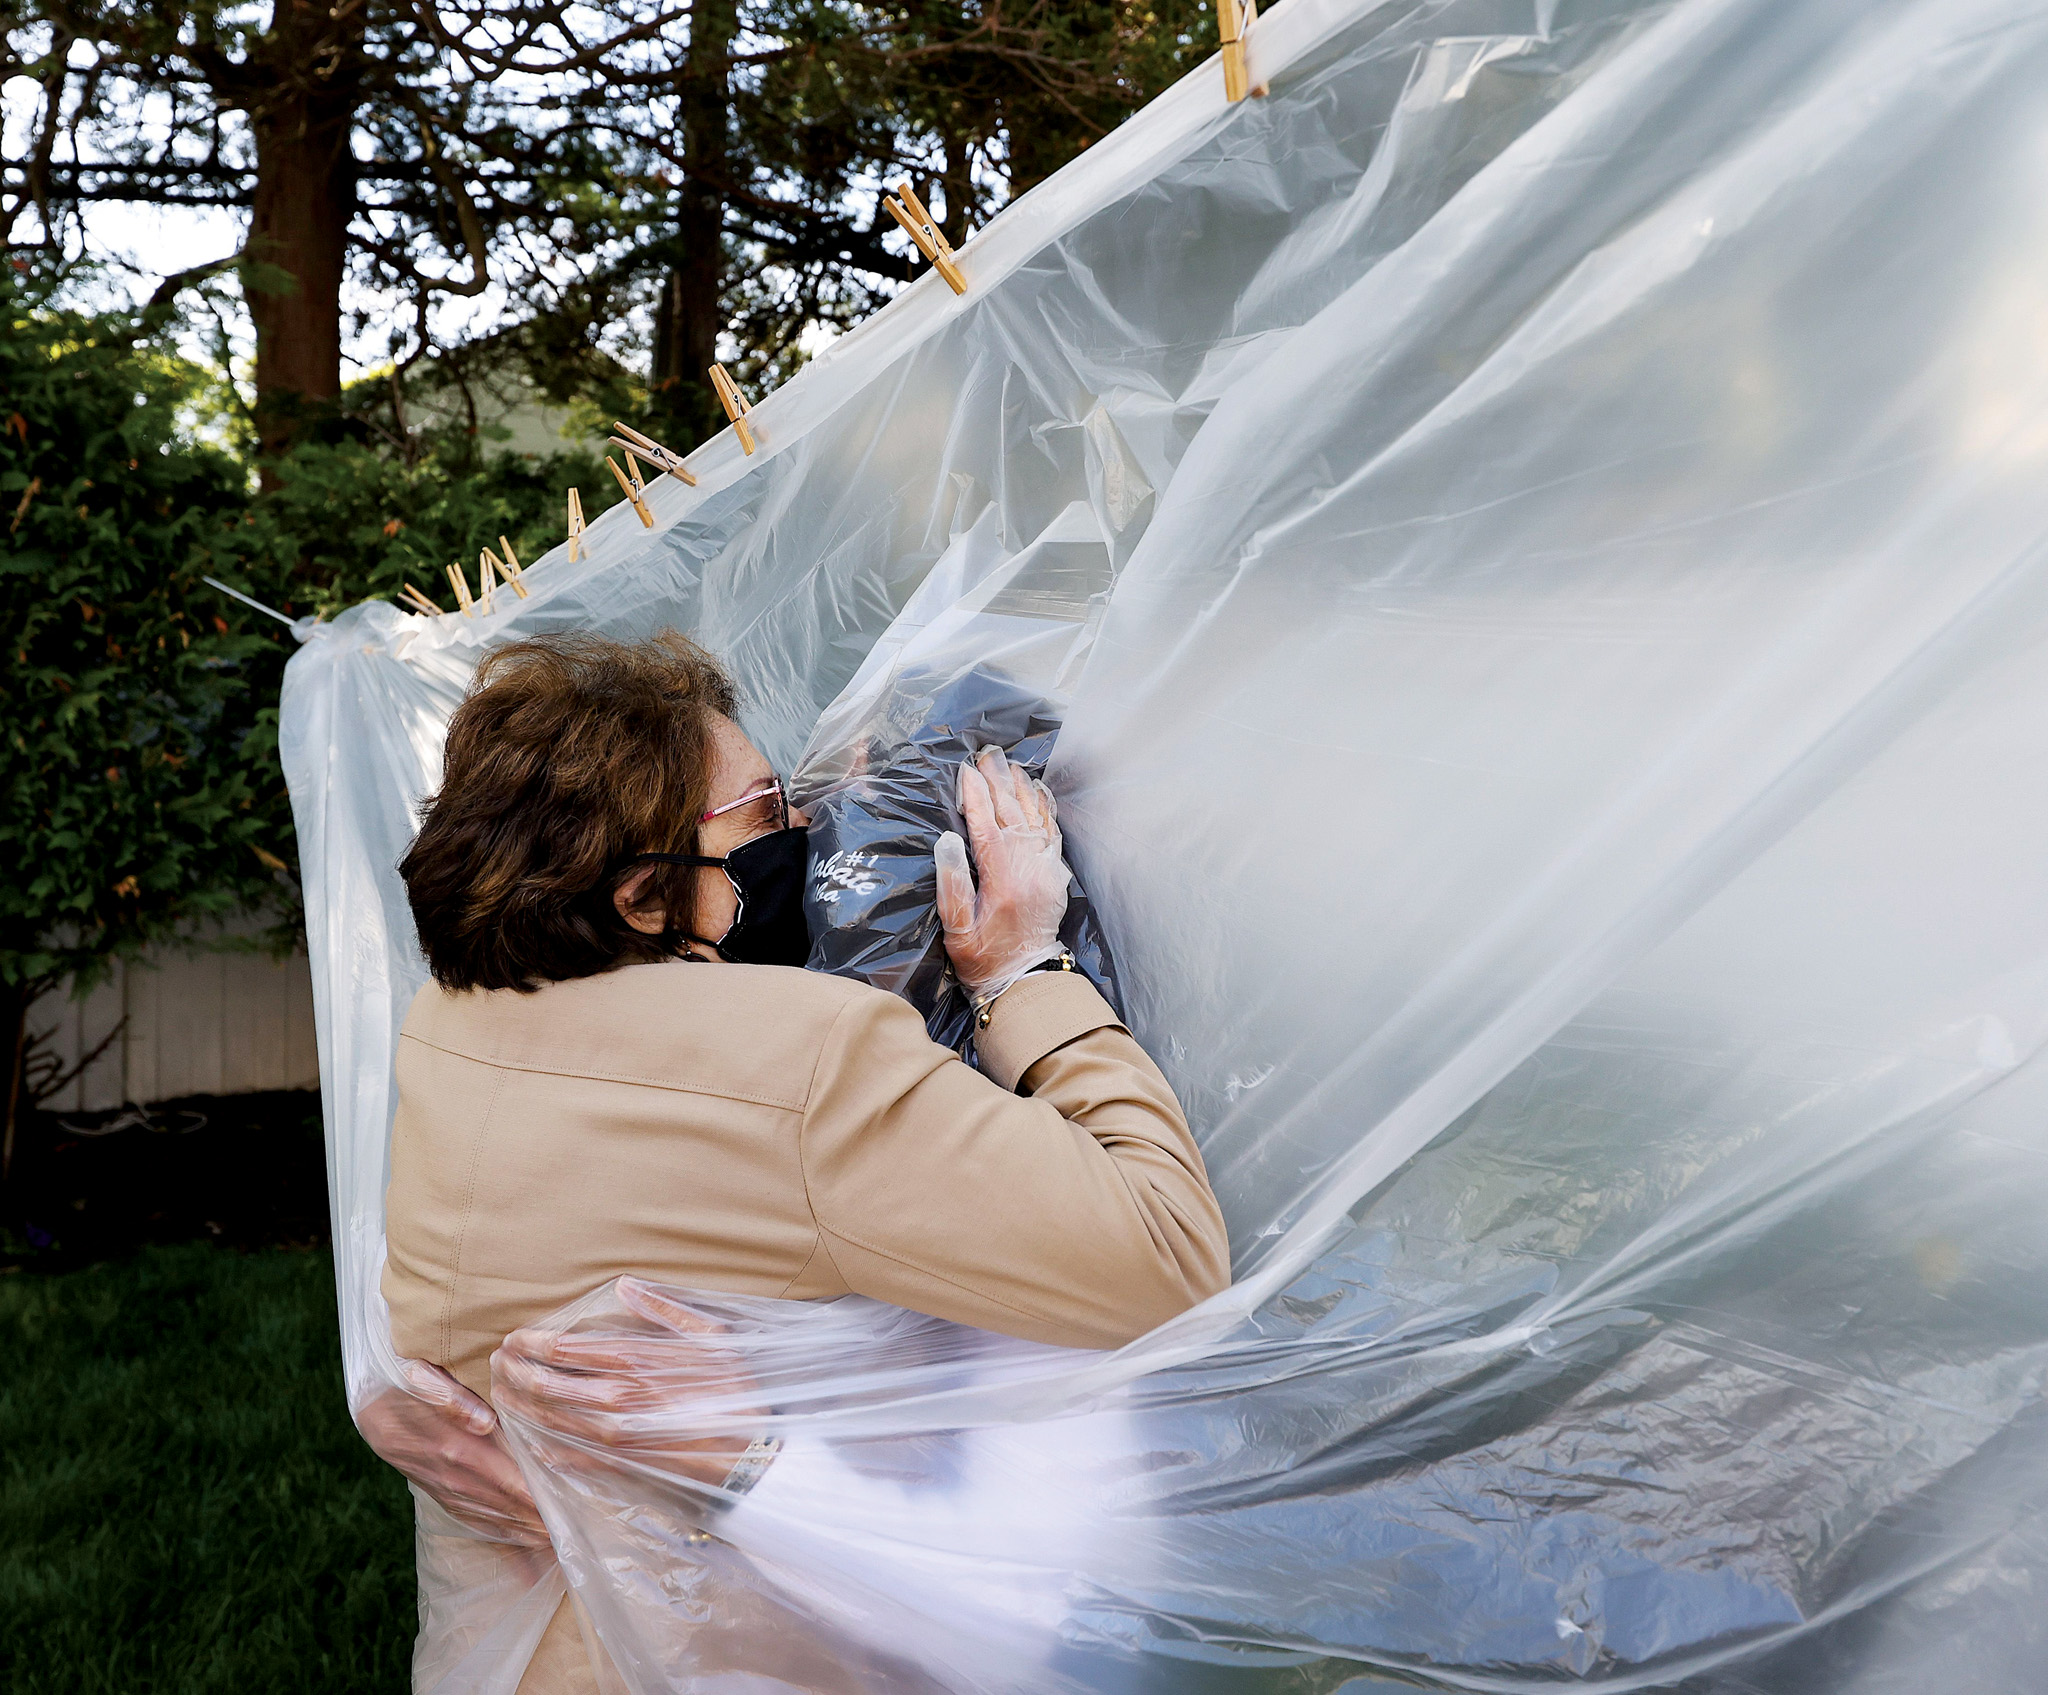 Picture of a woman kissing another person through a plastic sheet